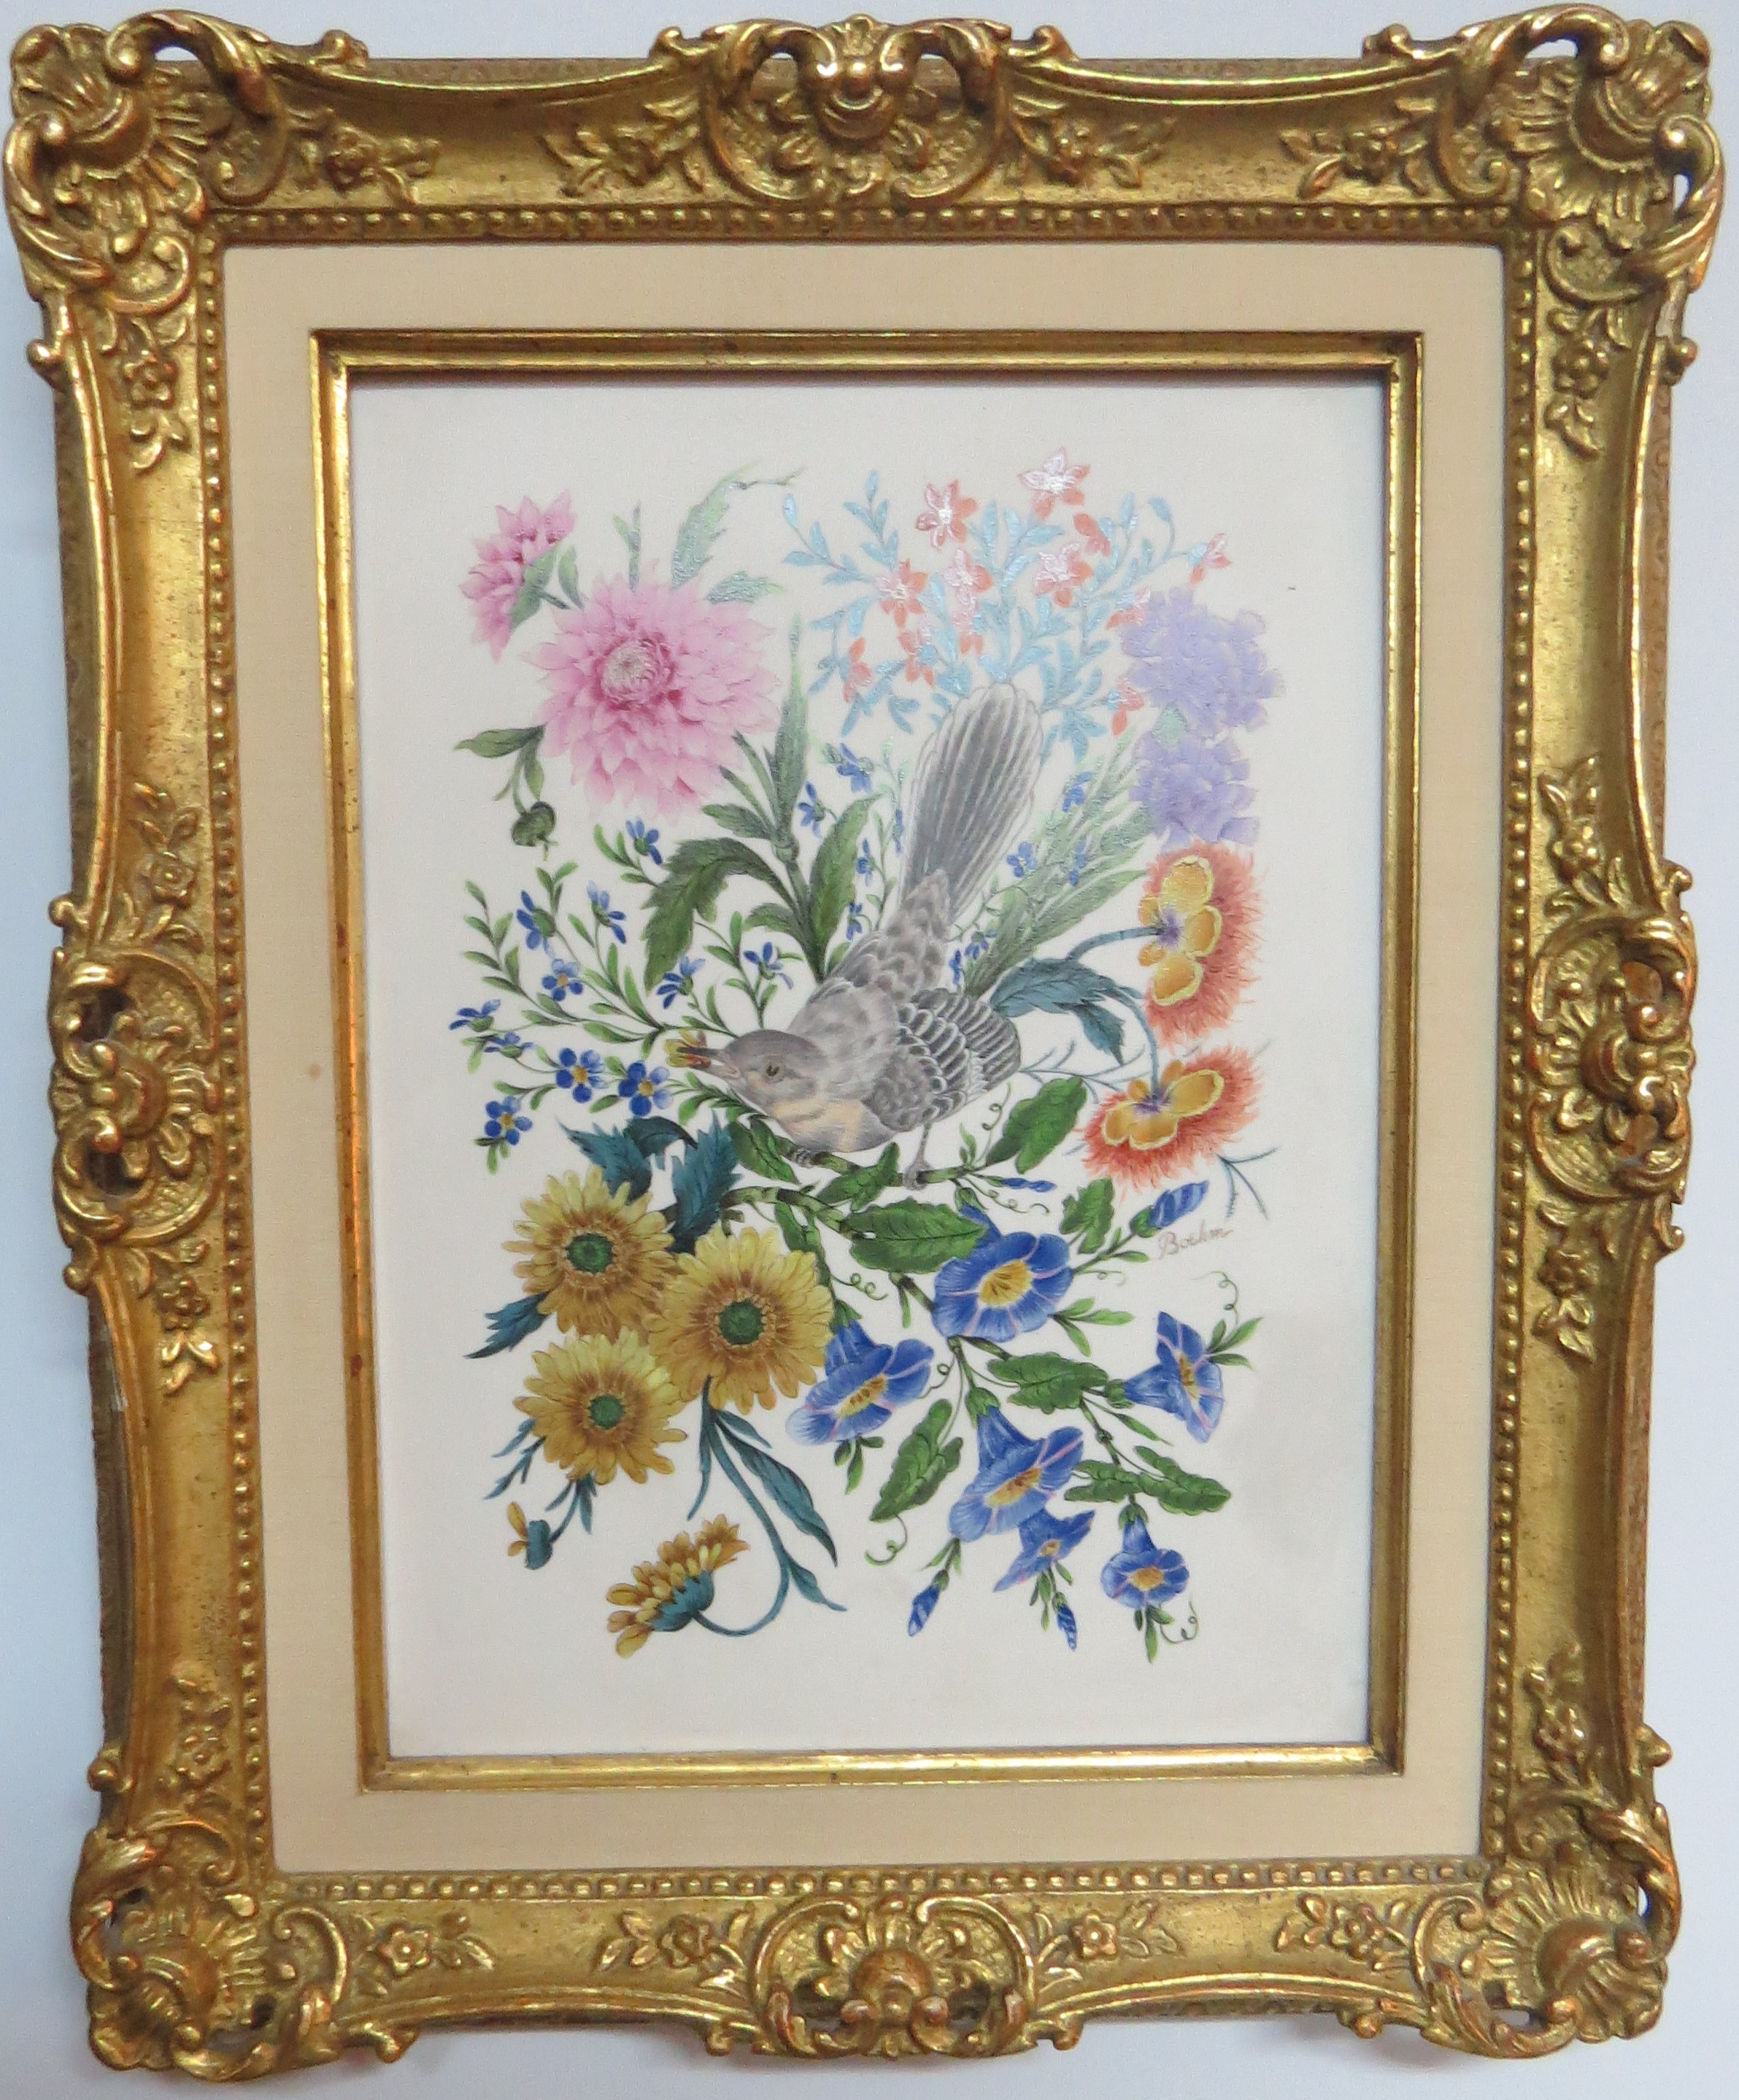 Pair of Boehm Paintings on Porcelain Tile of Mockingbirds with Flowers, signed Boehm